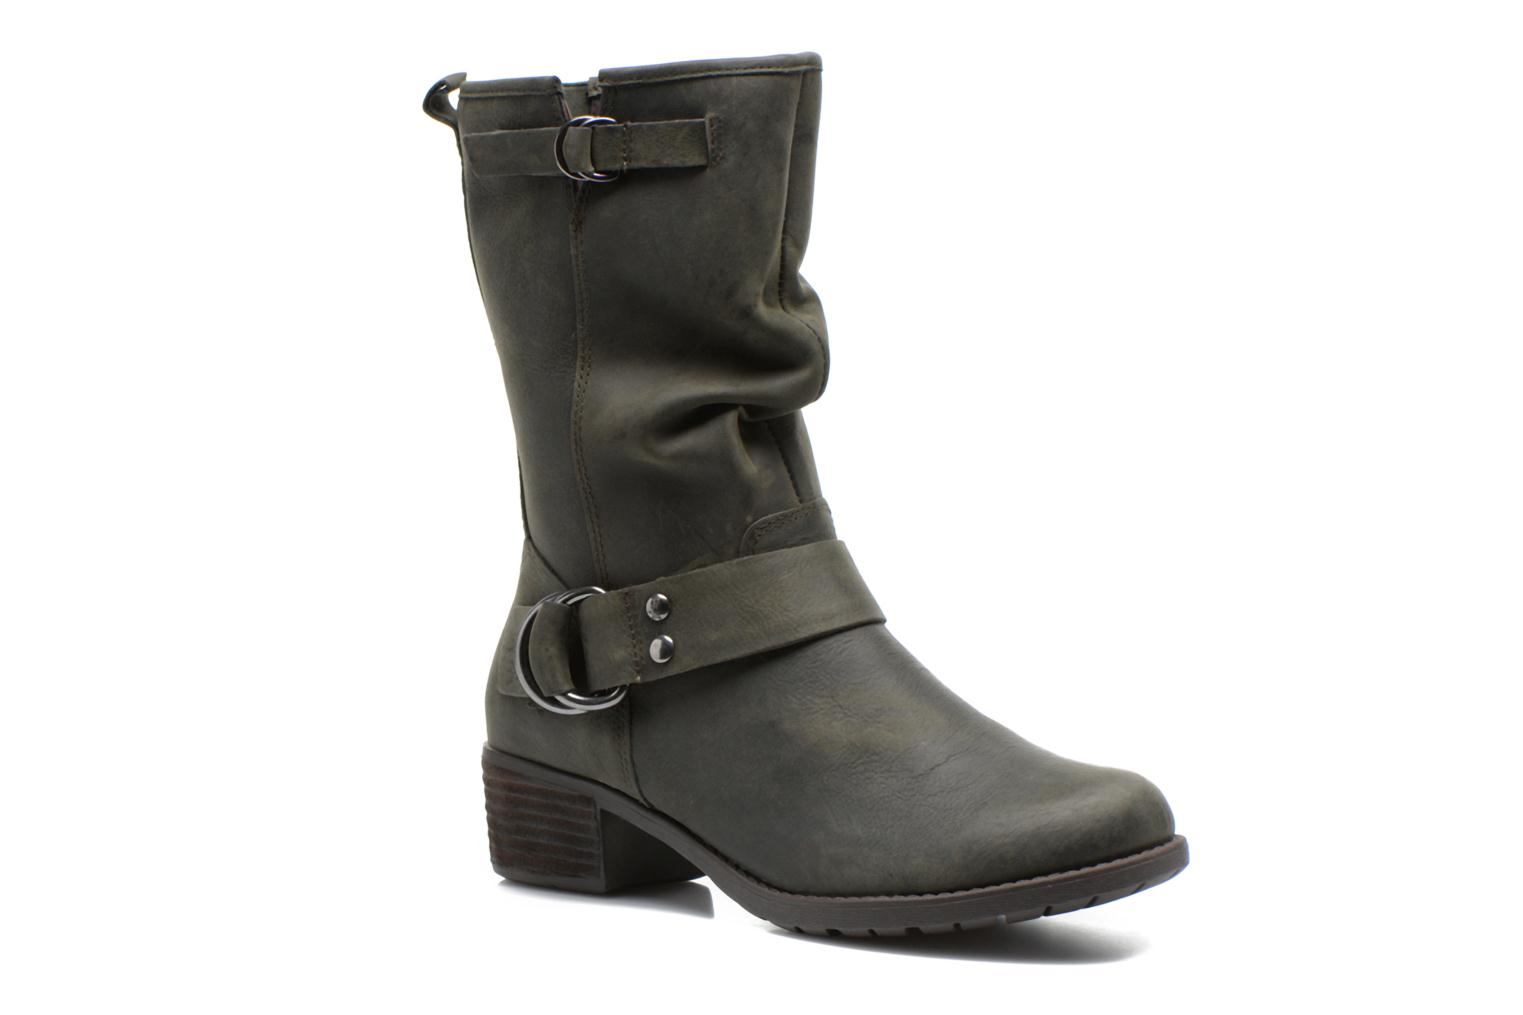 Emelee overton dark olive wp leather